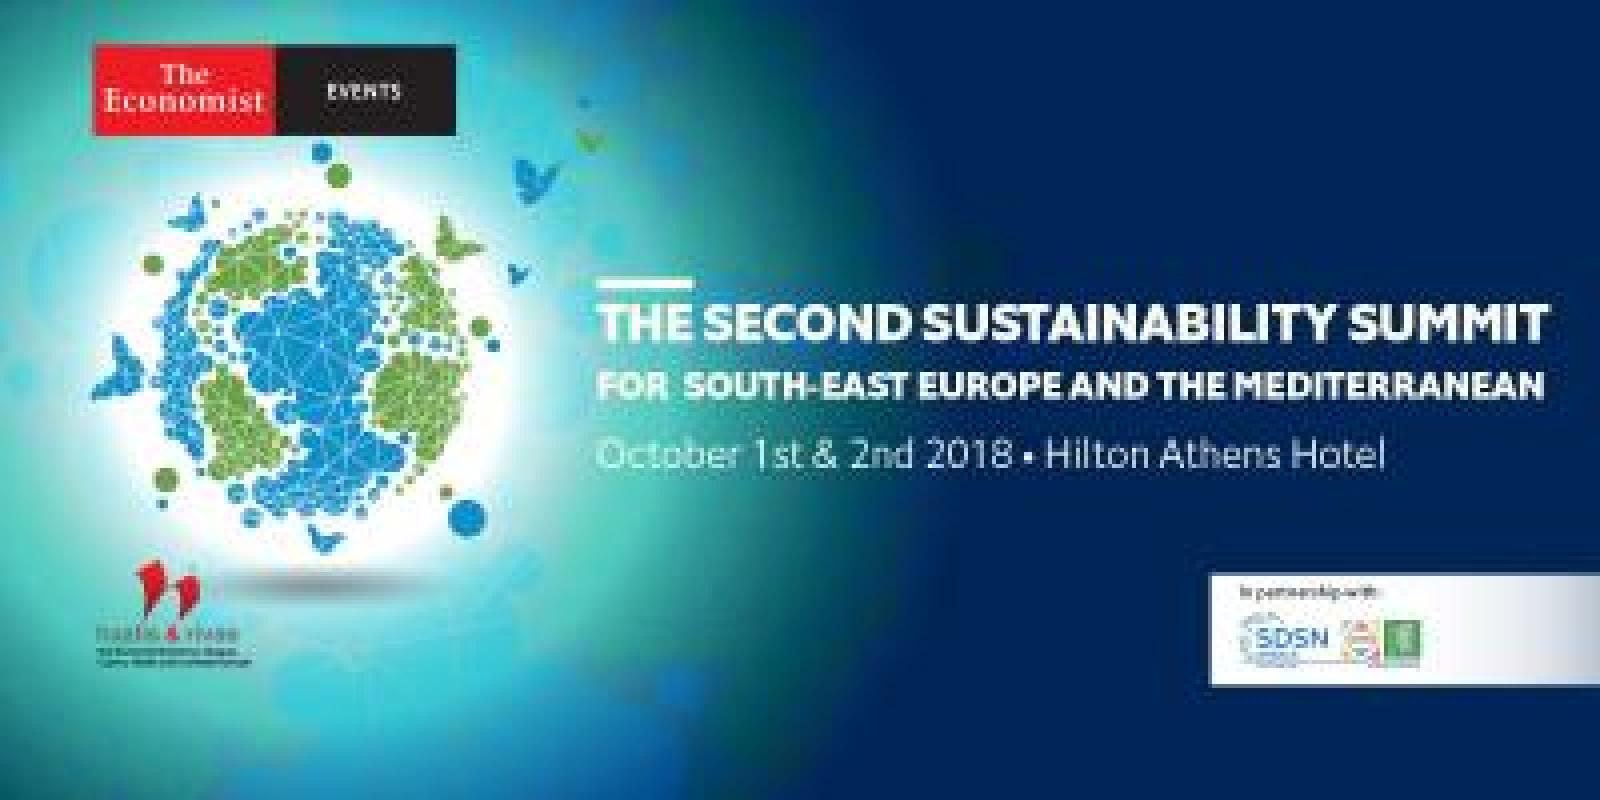 The 2nd Sustainability Summit for southeast Europe and the Mediterranean will take place in Athens at the Hilton Athens Hotel on October 1st and 2nd 2018